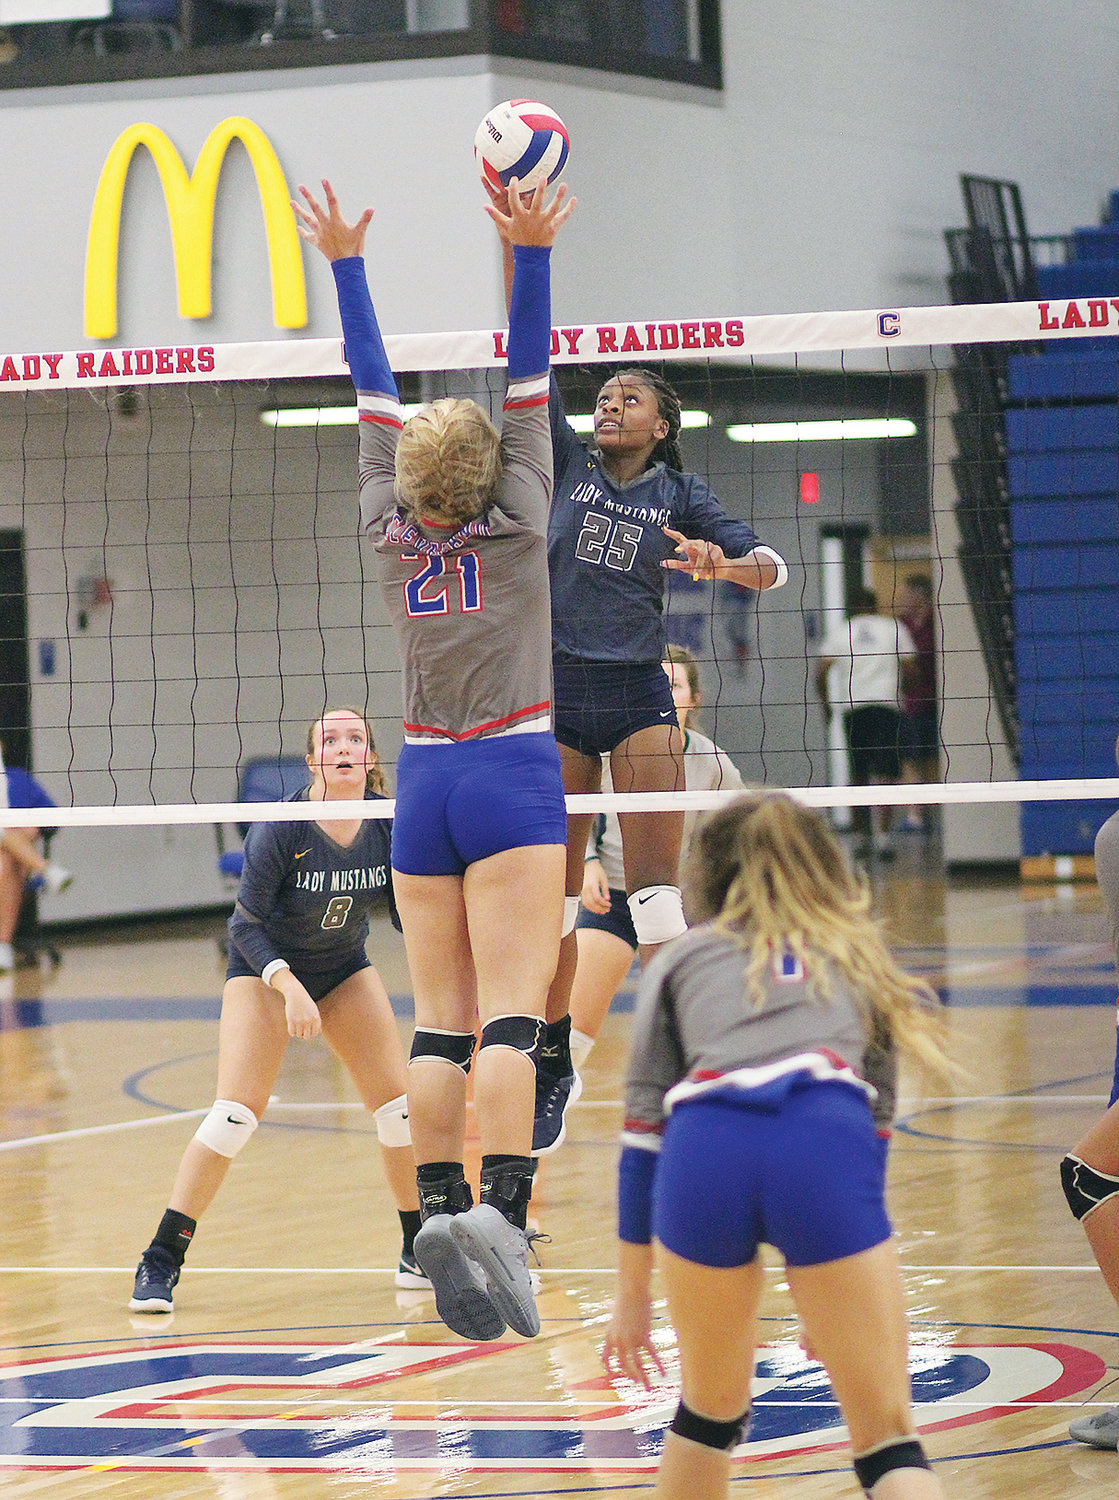 WALKER VALLEY middle hitter Jia Weathersby battles Cleveland's Jordan Whitcraft in game two of Tuesday's match between the Lady Raiders and Lady Mustangs, at Cleveland.